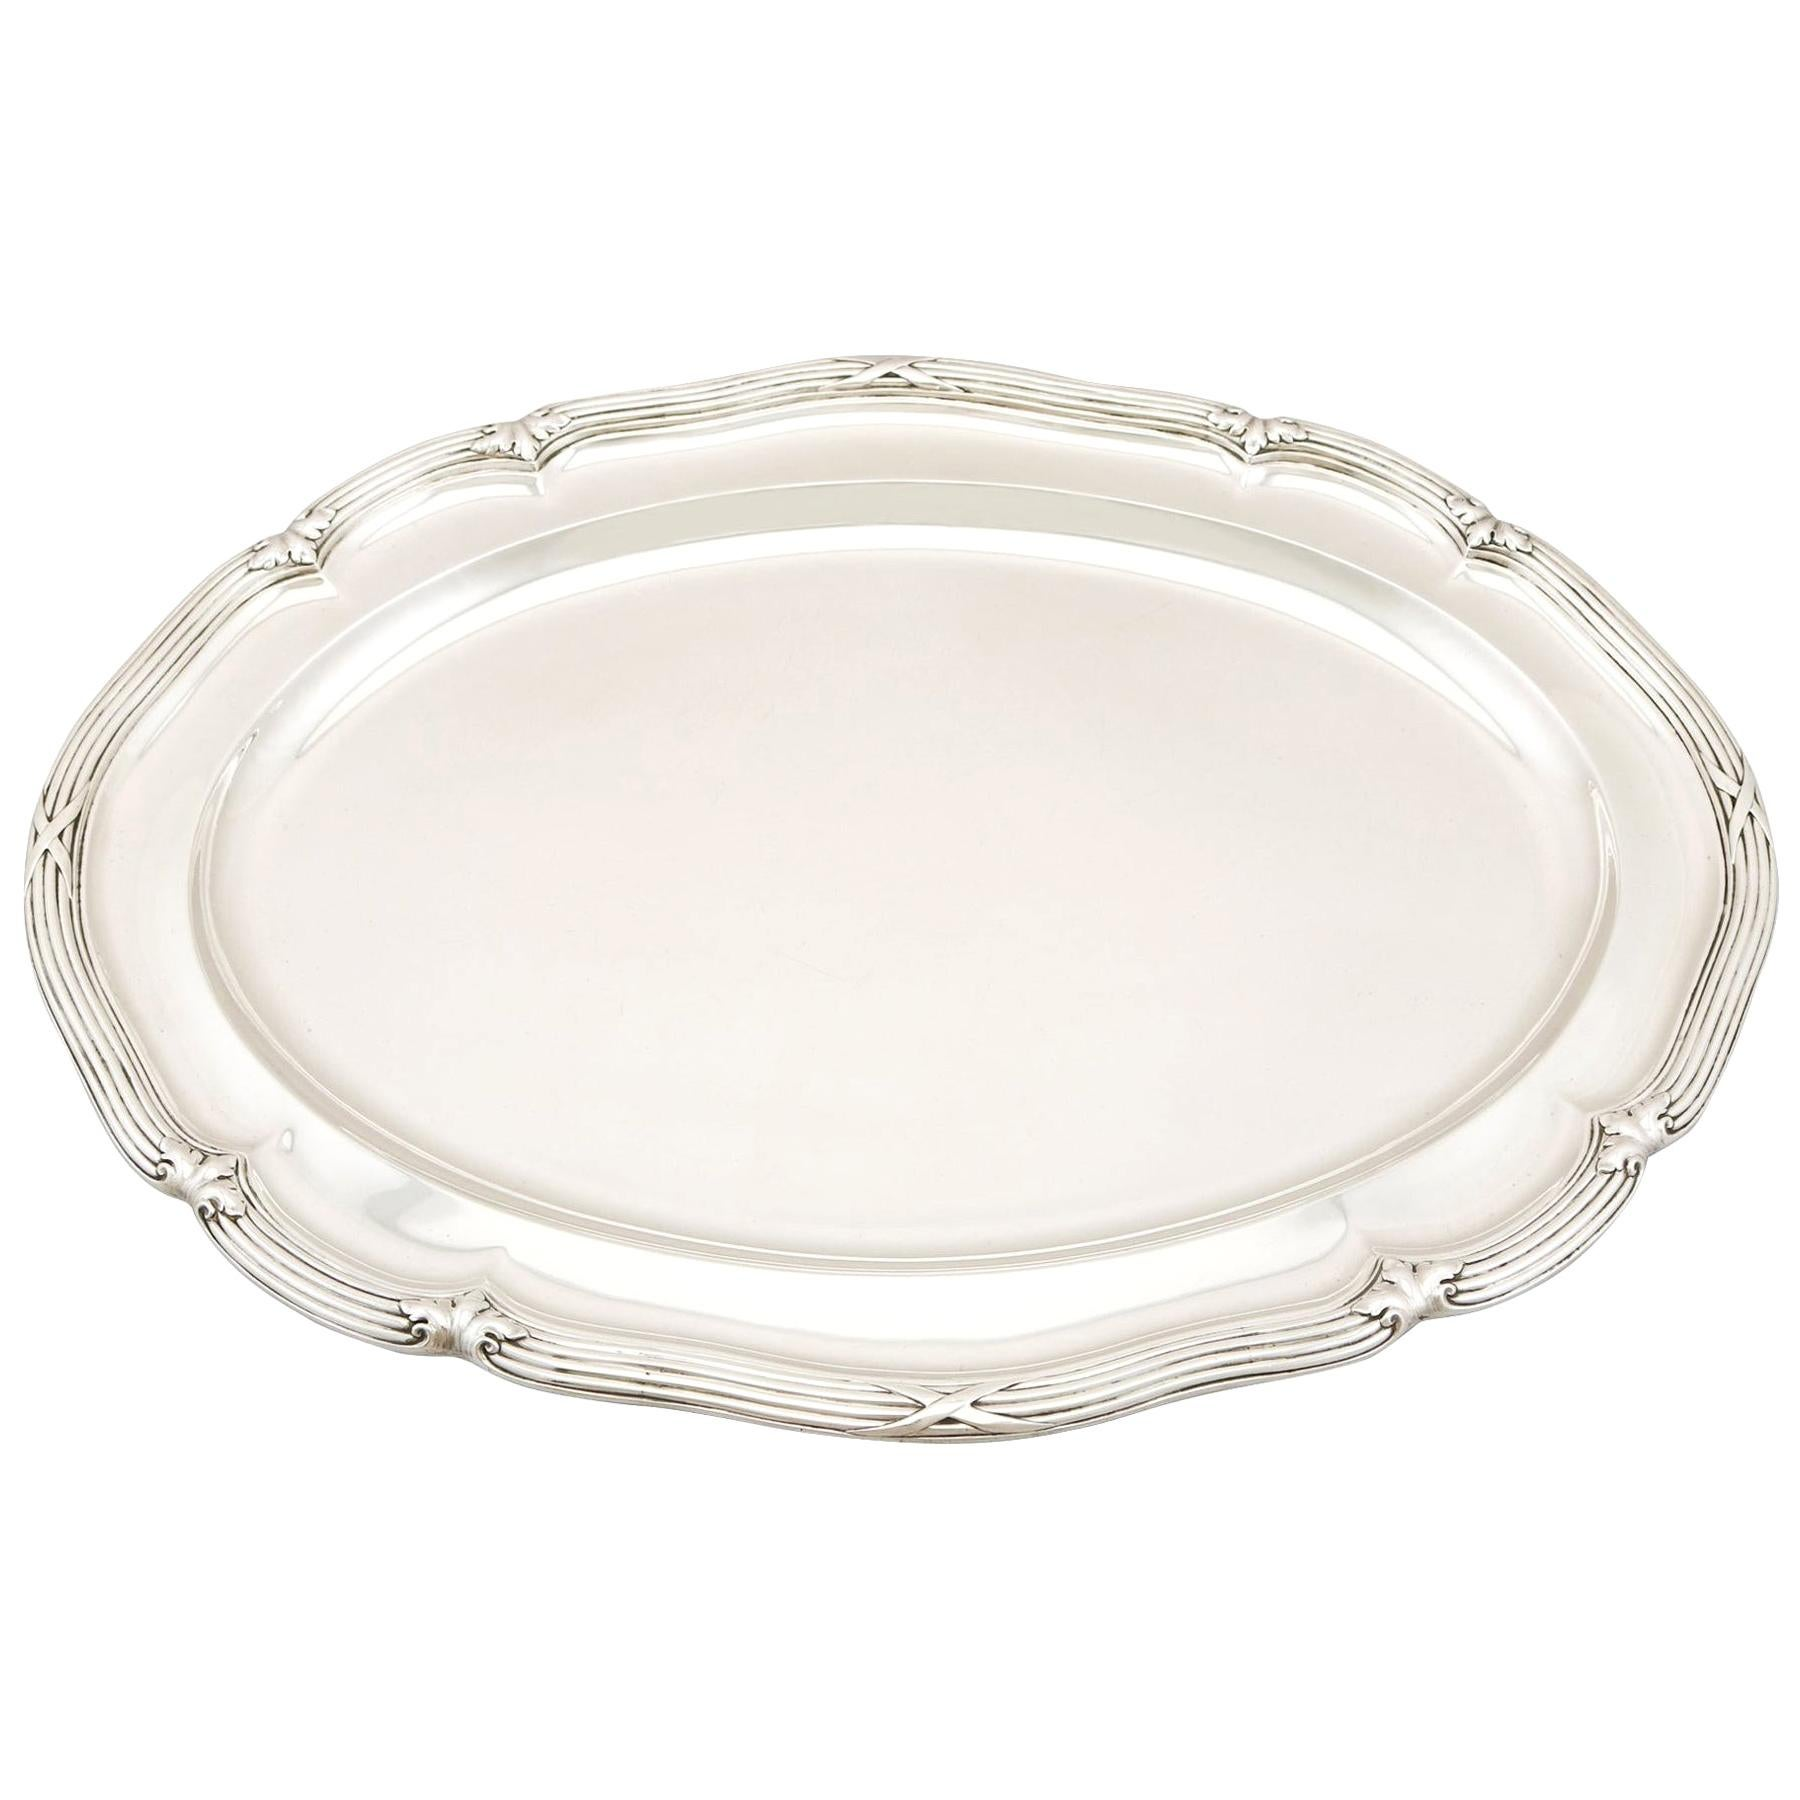 19th Century Antique Victorian 1839 Sterling Silver Meat Platter